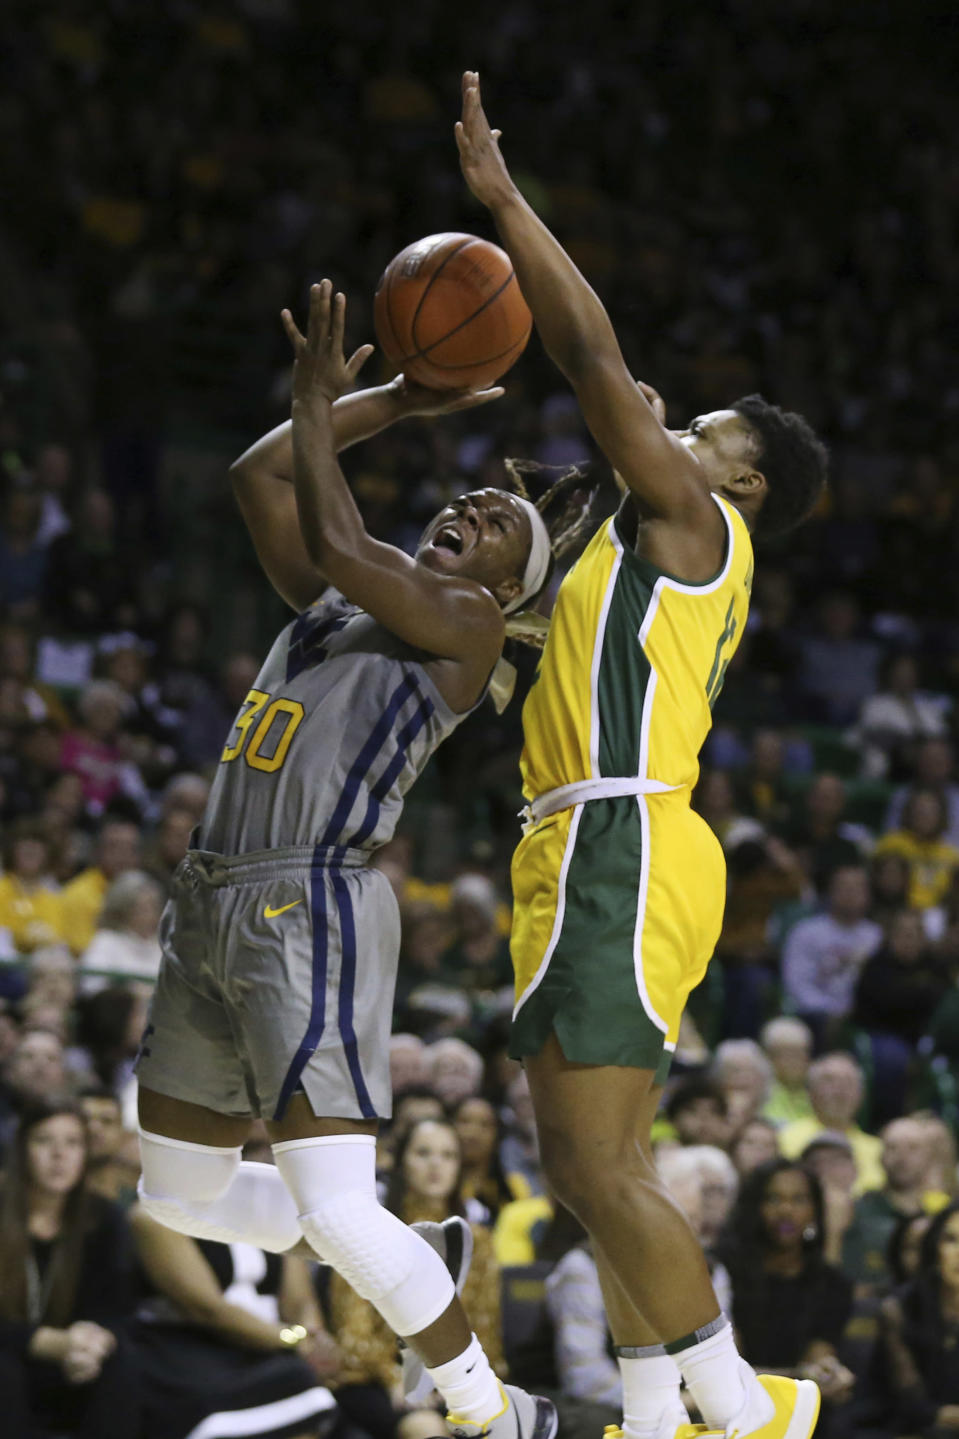 West Virginia guard Madisen Smith, left, attempts a basket while pressured by Baylor guard Moon Ursin, right, in the first half of an NCAA college basketball game, Saturday, Jan. 18, 2020, in Waco, Texas. (AP Photo/Rod Aydelotte)